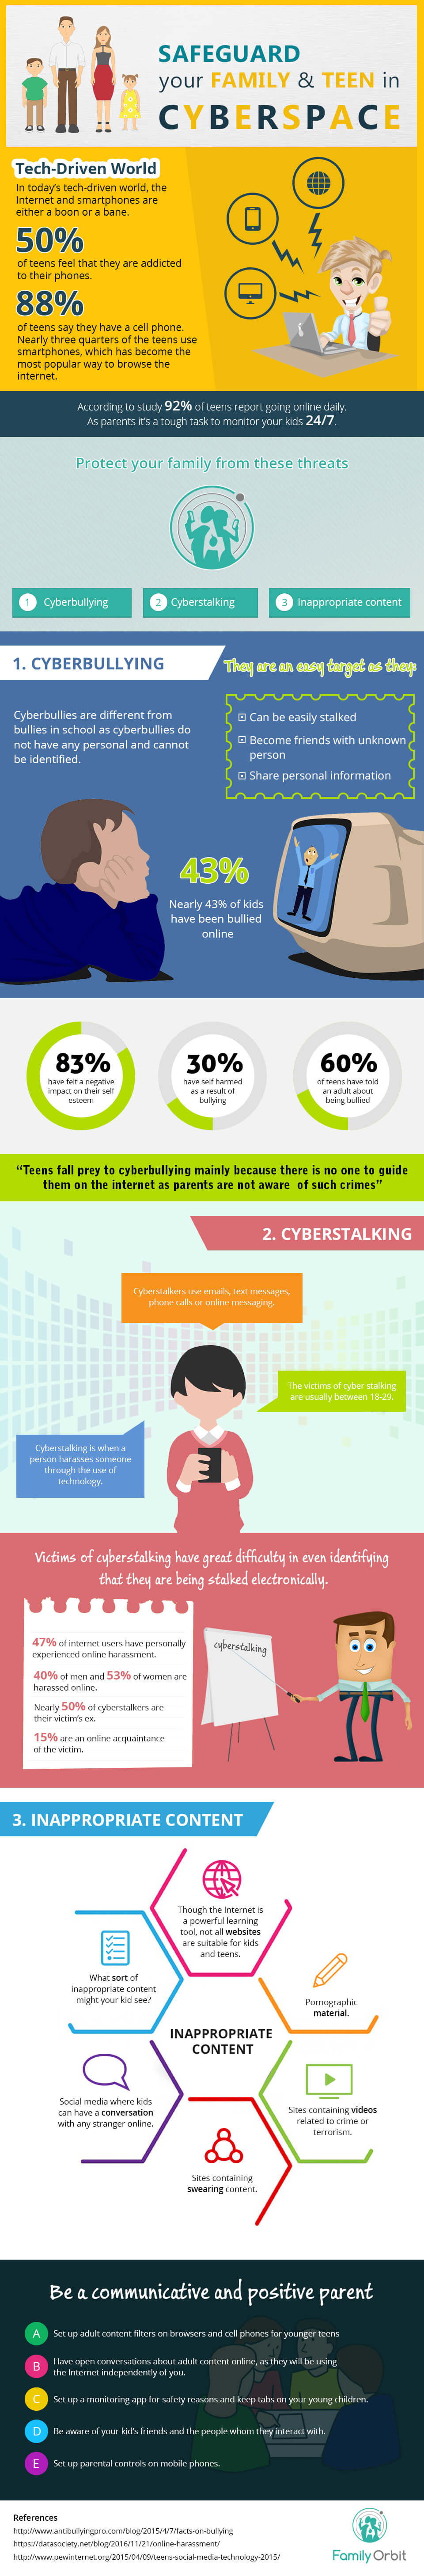 Safety in Cyberspace for Your Family